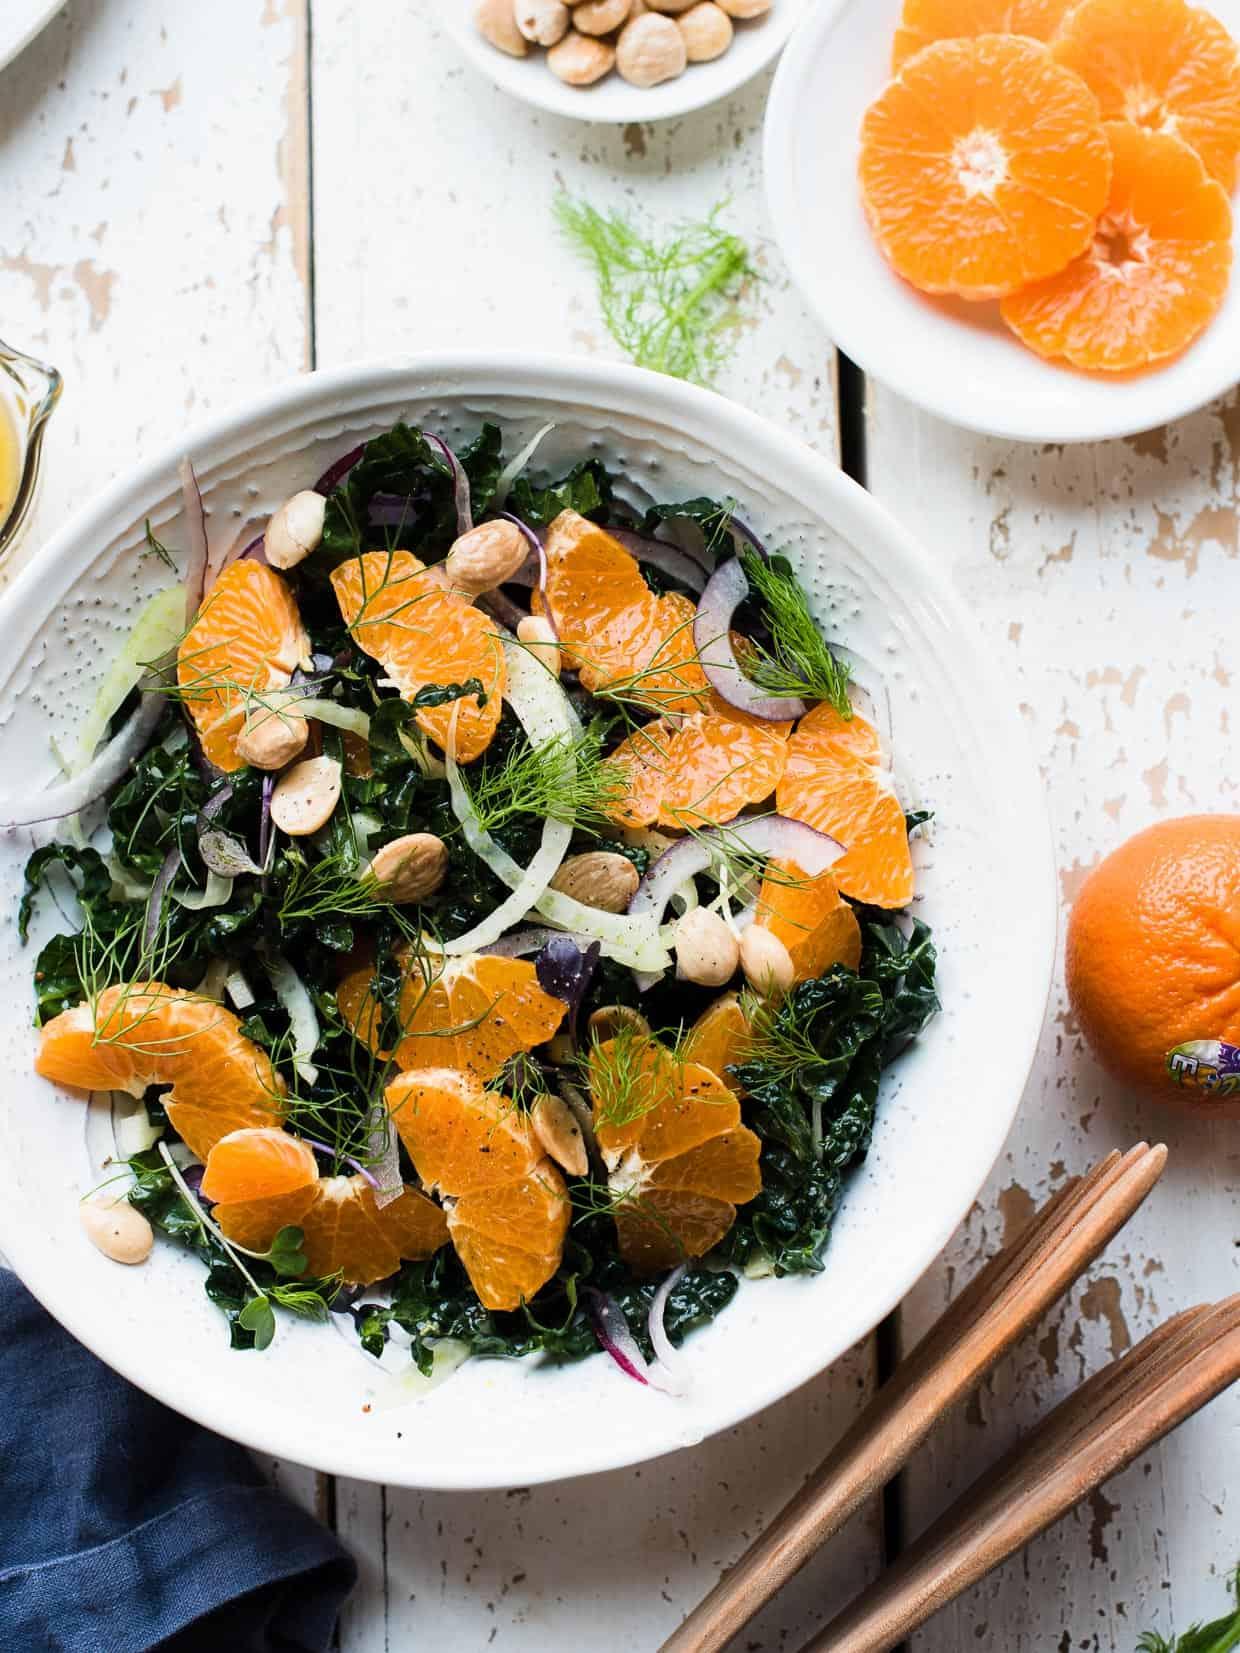 Over head shot of mandarin orange kale salad with salad tongs on the side.